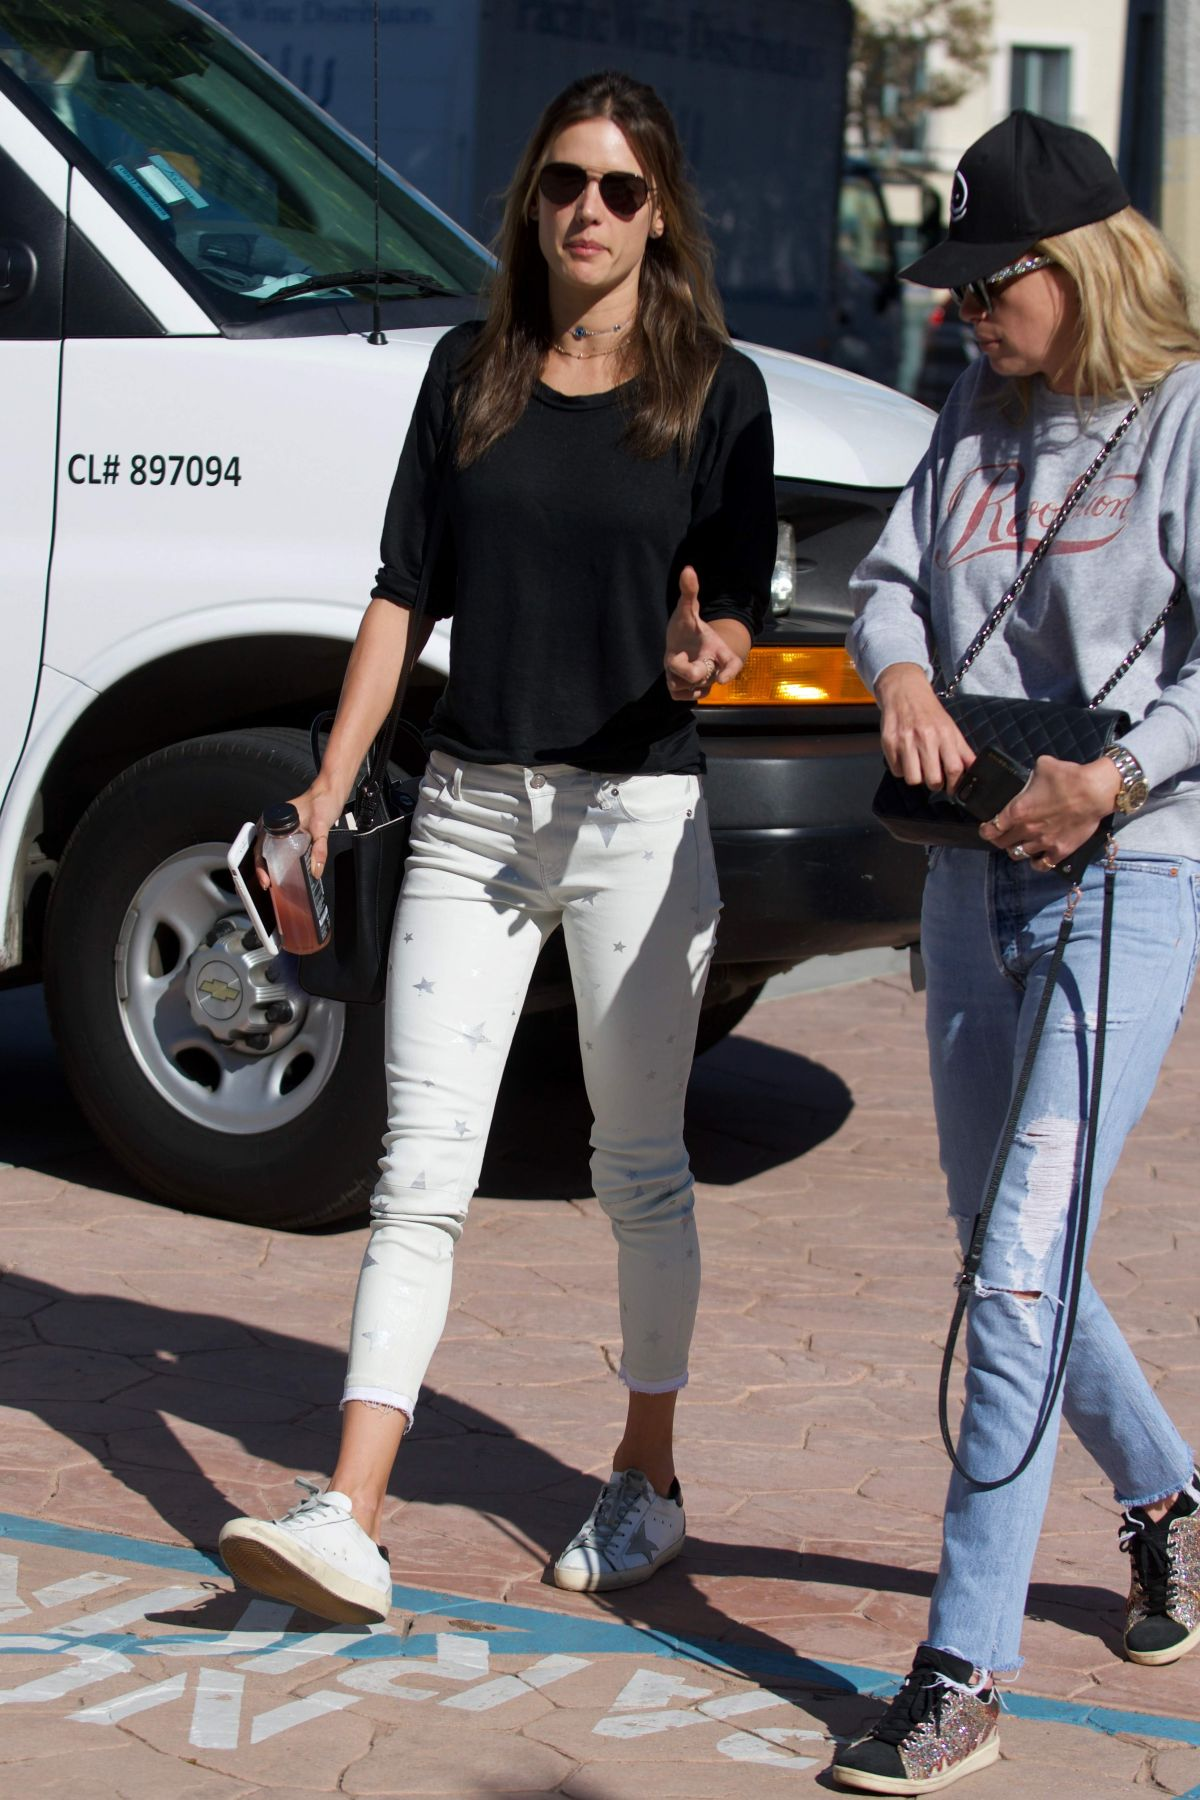 Alessandra ambrosio out and about in los angeles - 2019 year